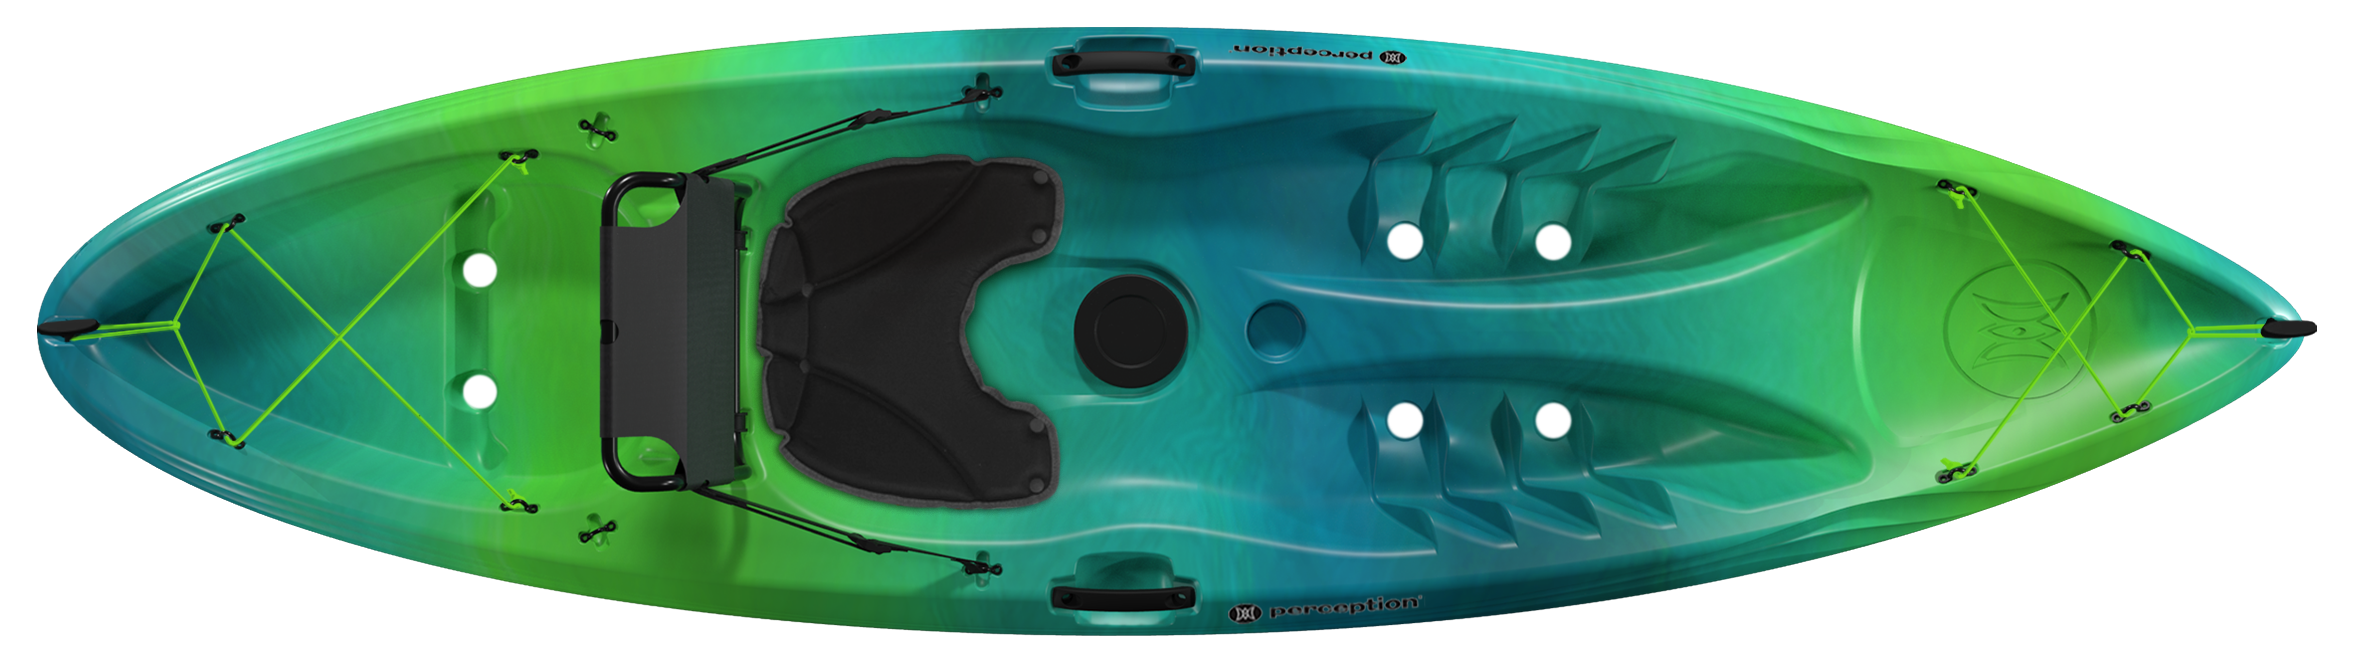 Top view of 2020 Tribe 9.5 Kayak